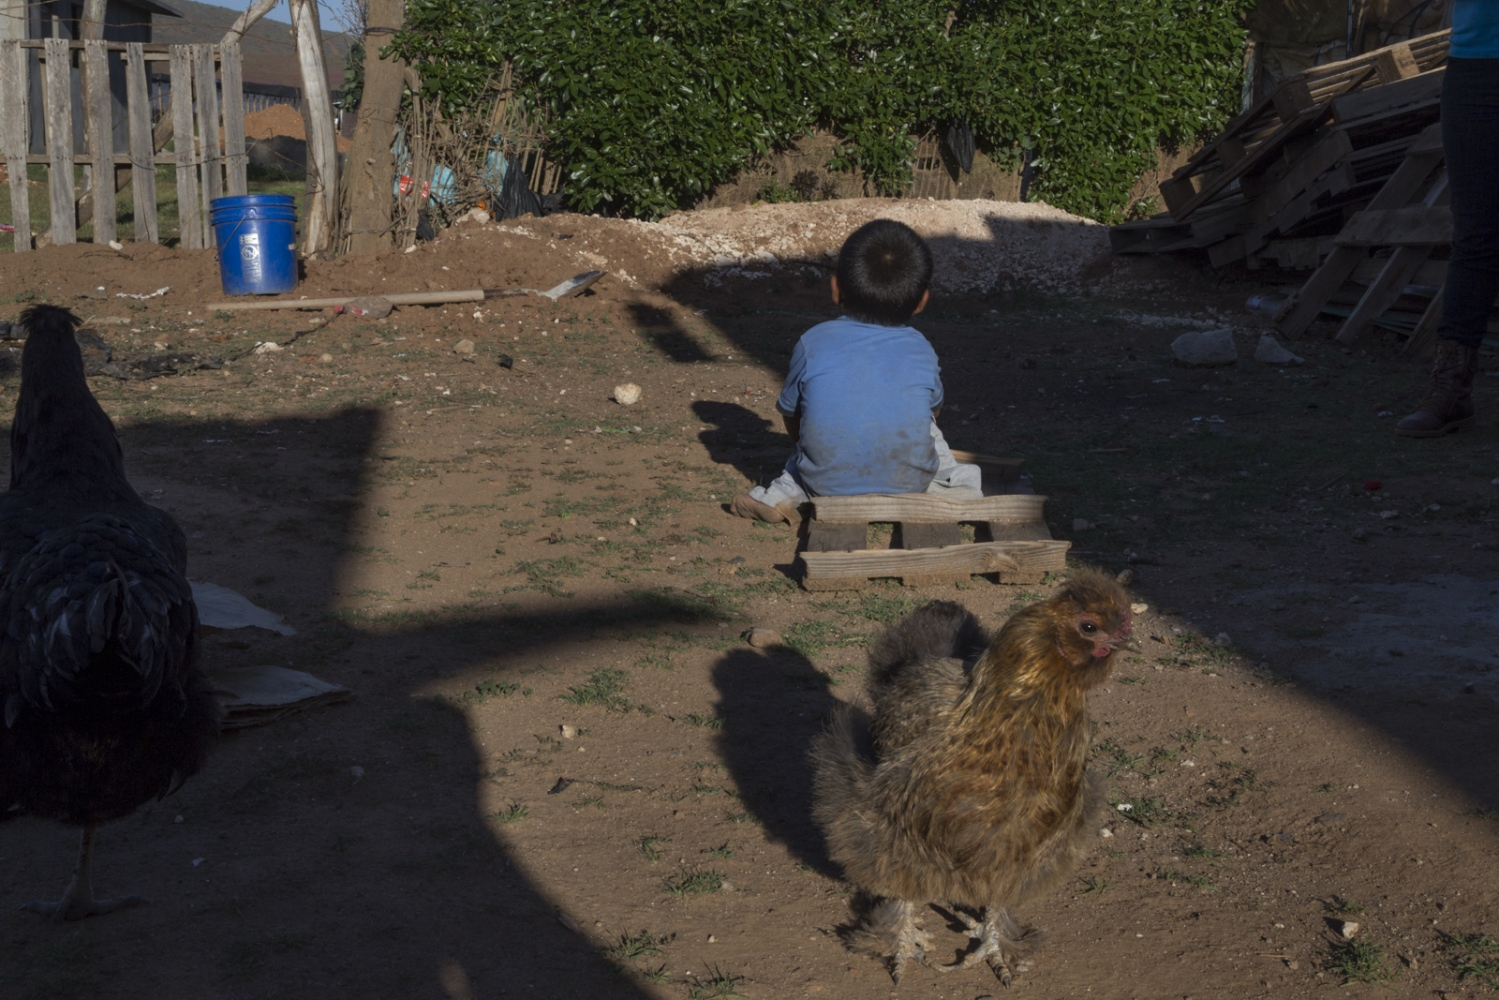 Little Felis plays outside his humble house in Mexico's San Quintin valley.